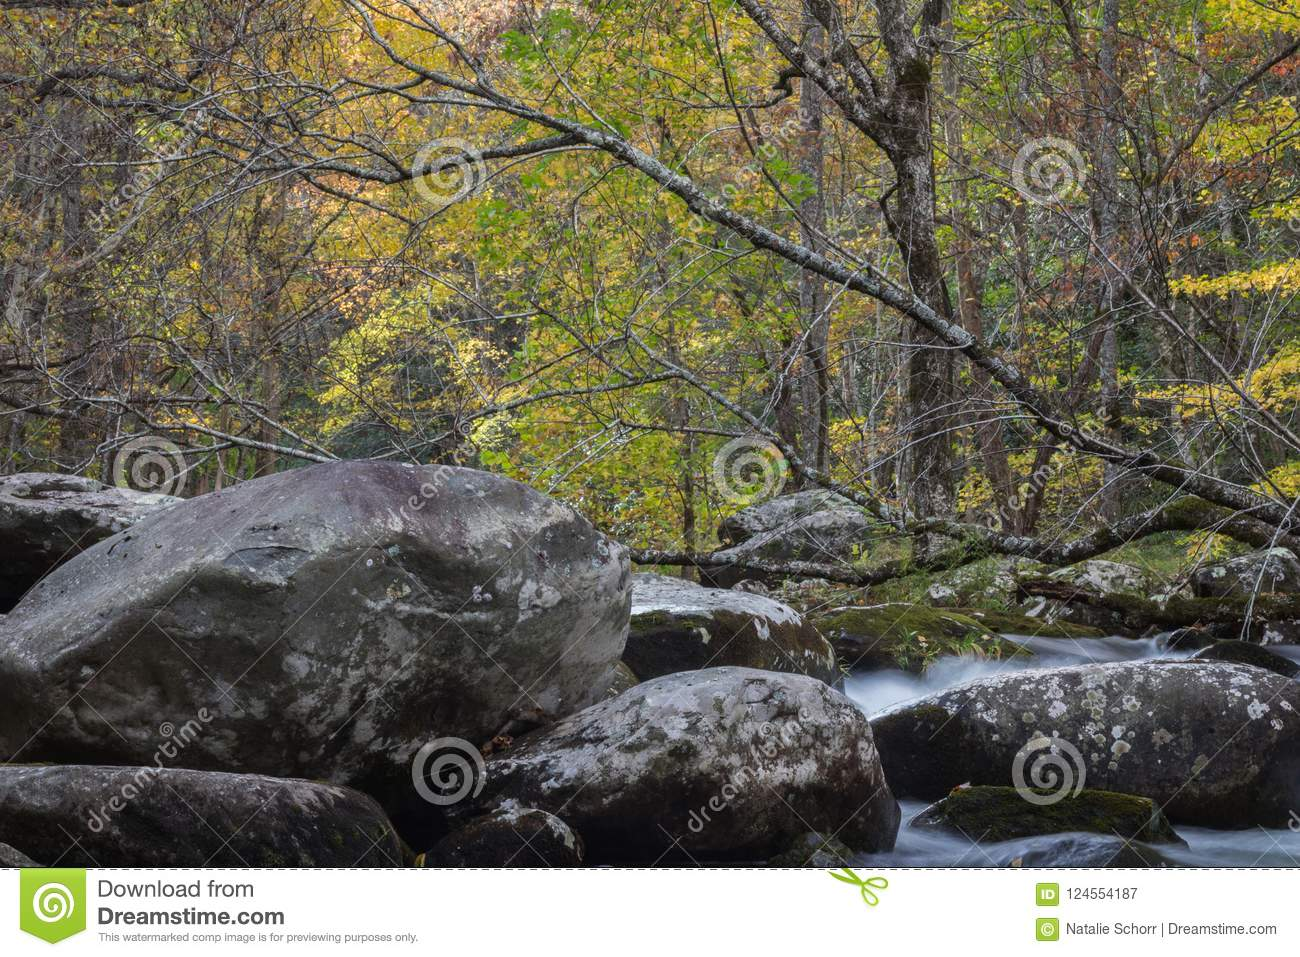 Large deadfall tree top across a stream with large rocks in an autumn landscape